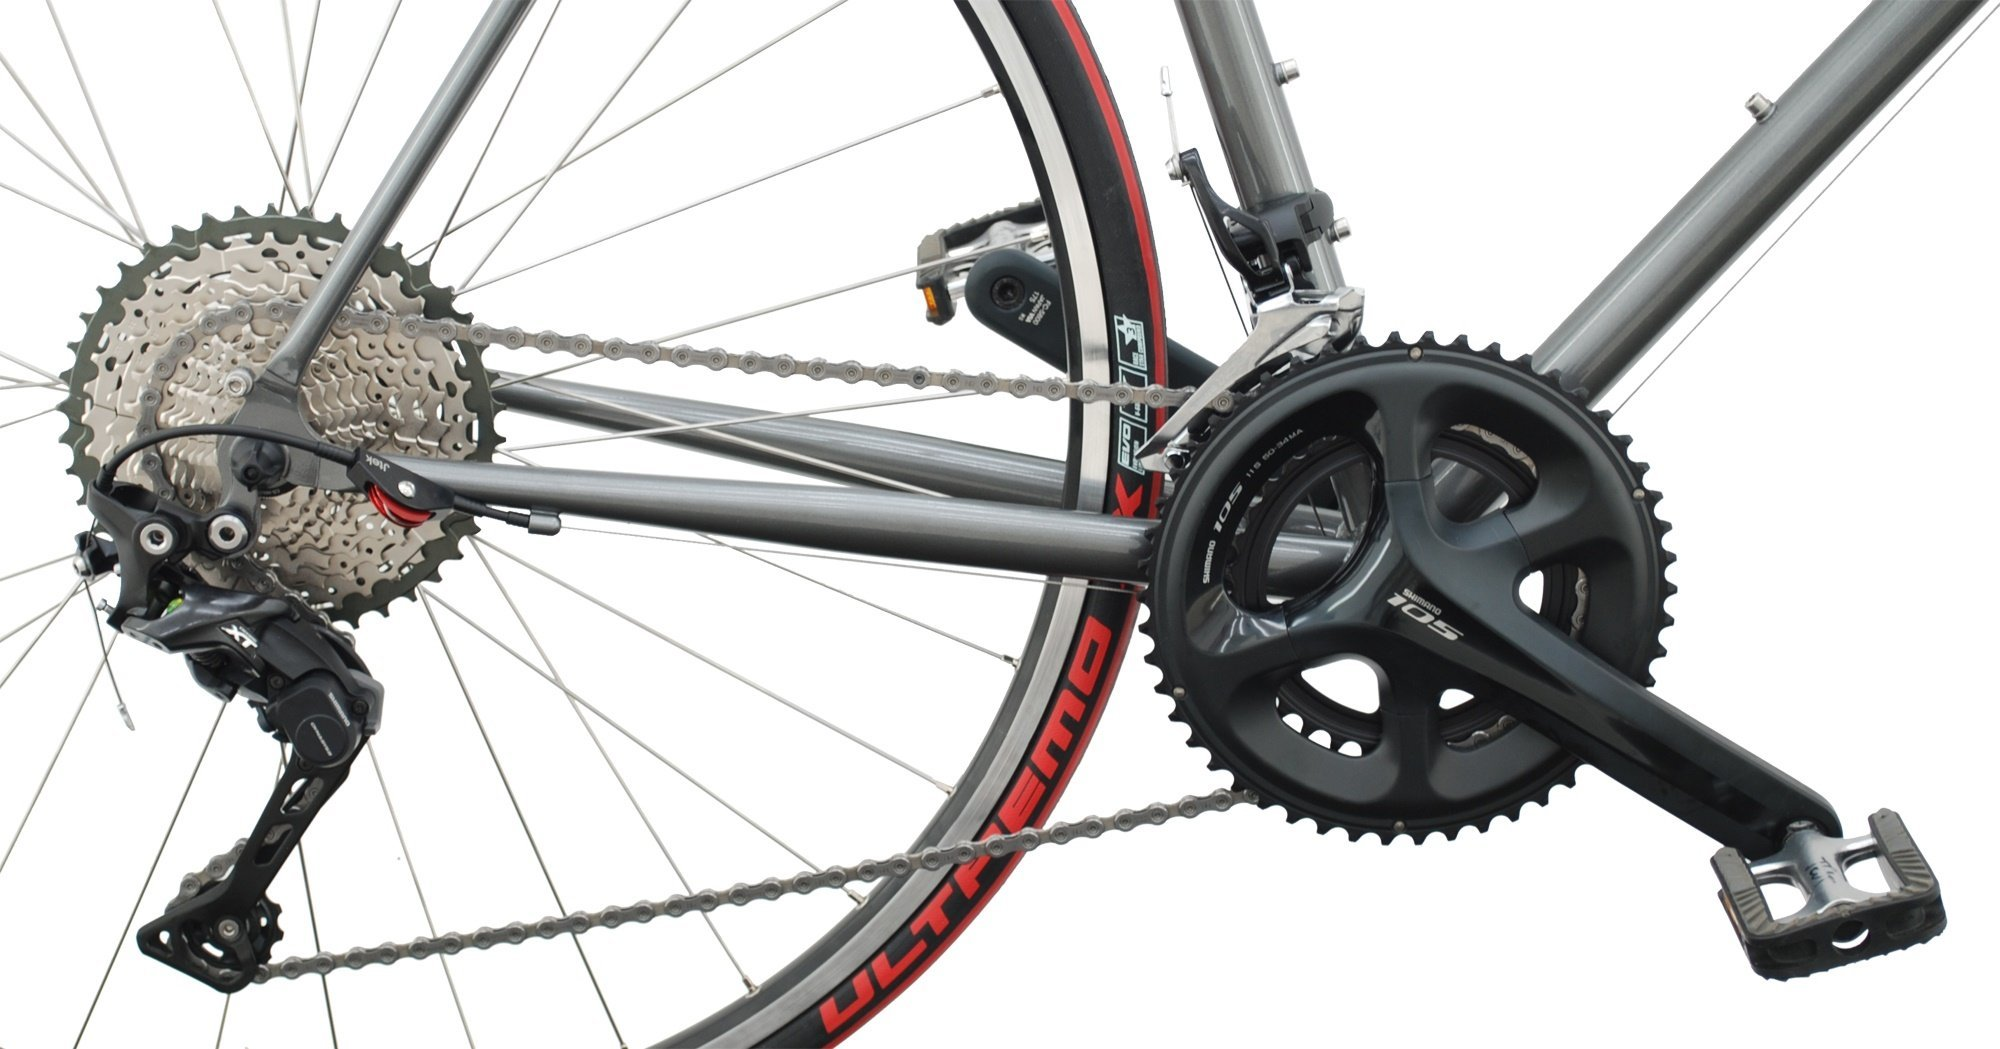 Jtek Shiftmate Mix Mtb Cassettes With Sti Road Shifters To Lower